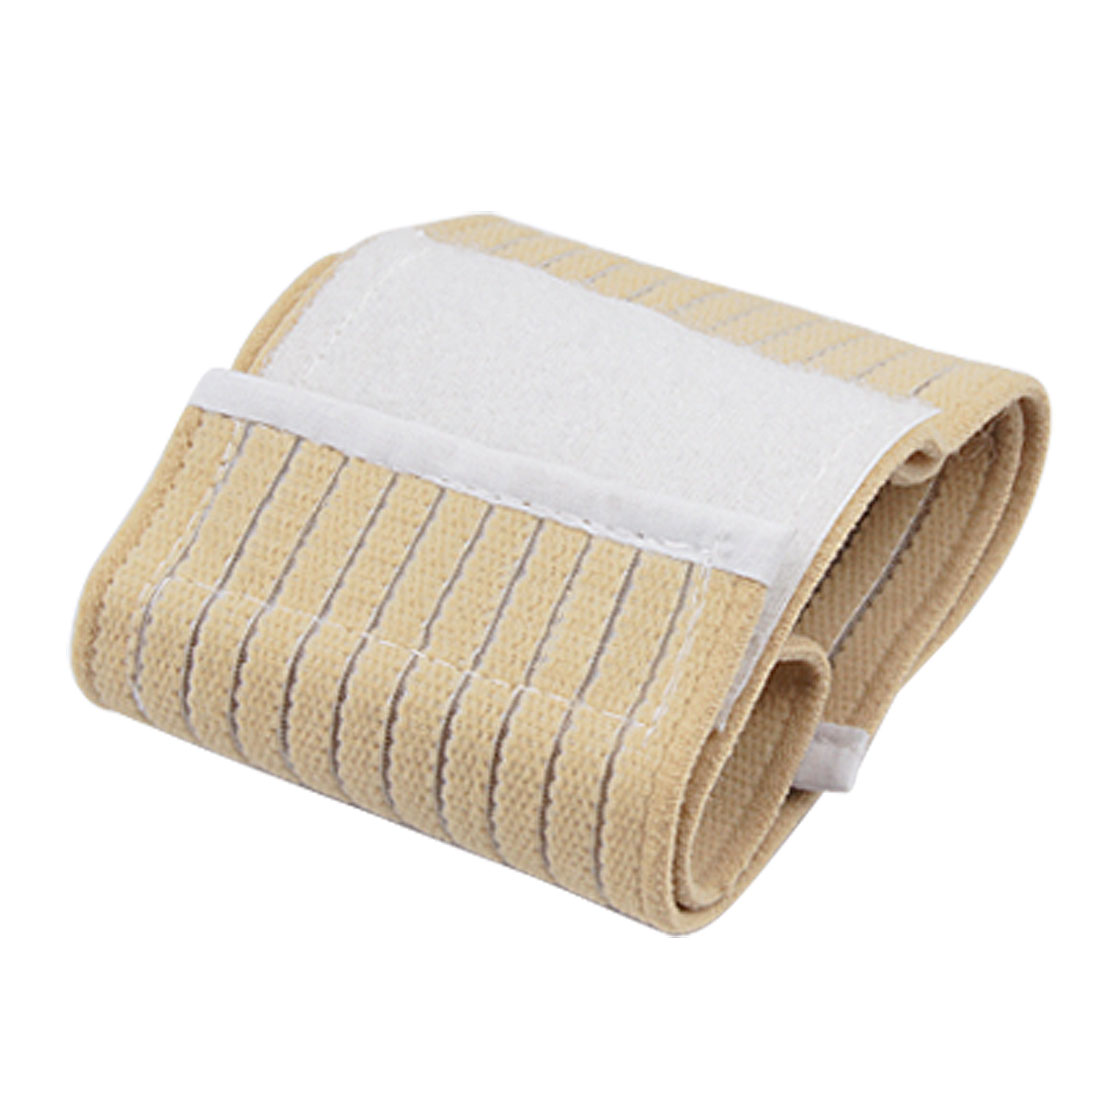 Beige Striped Elastic Sporting Wrist Wrap Support Protector